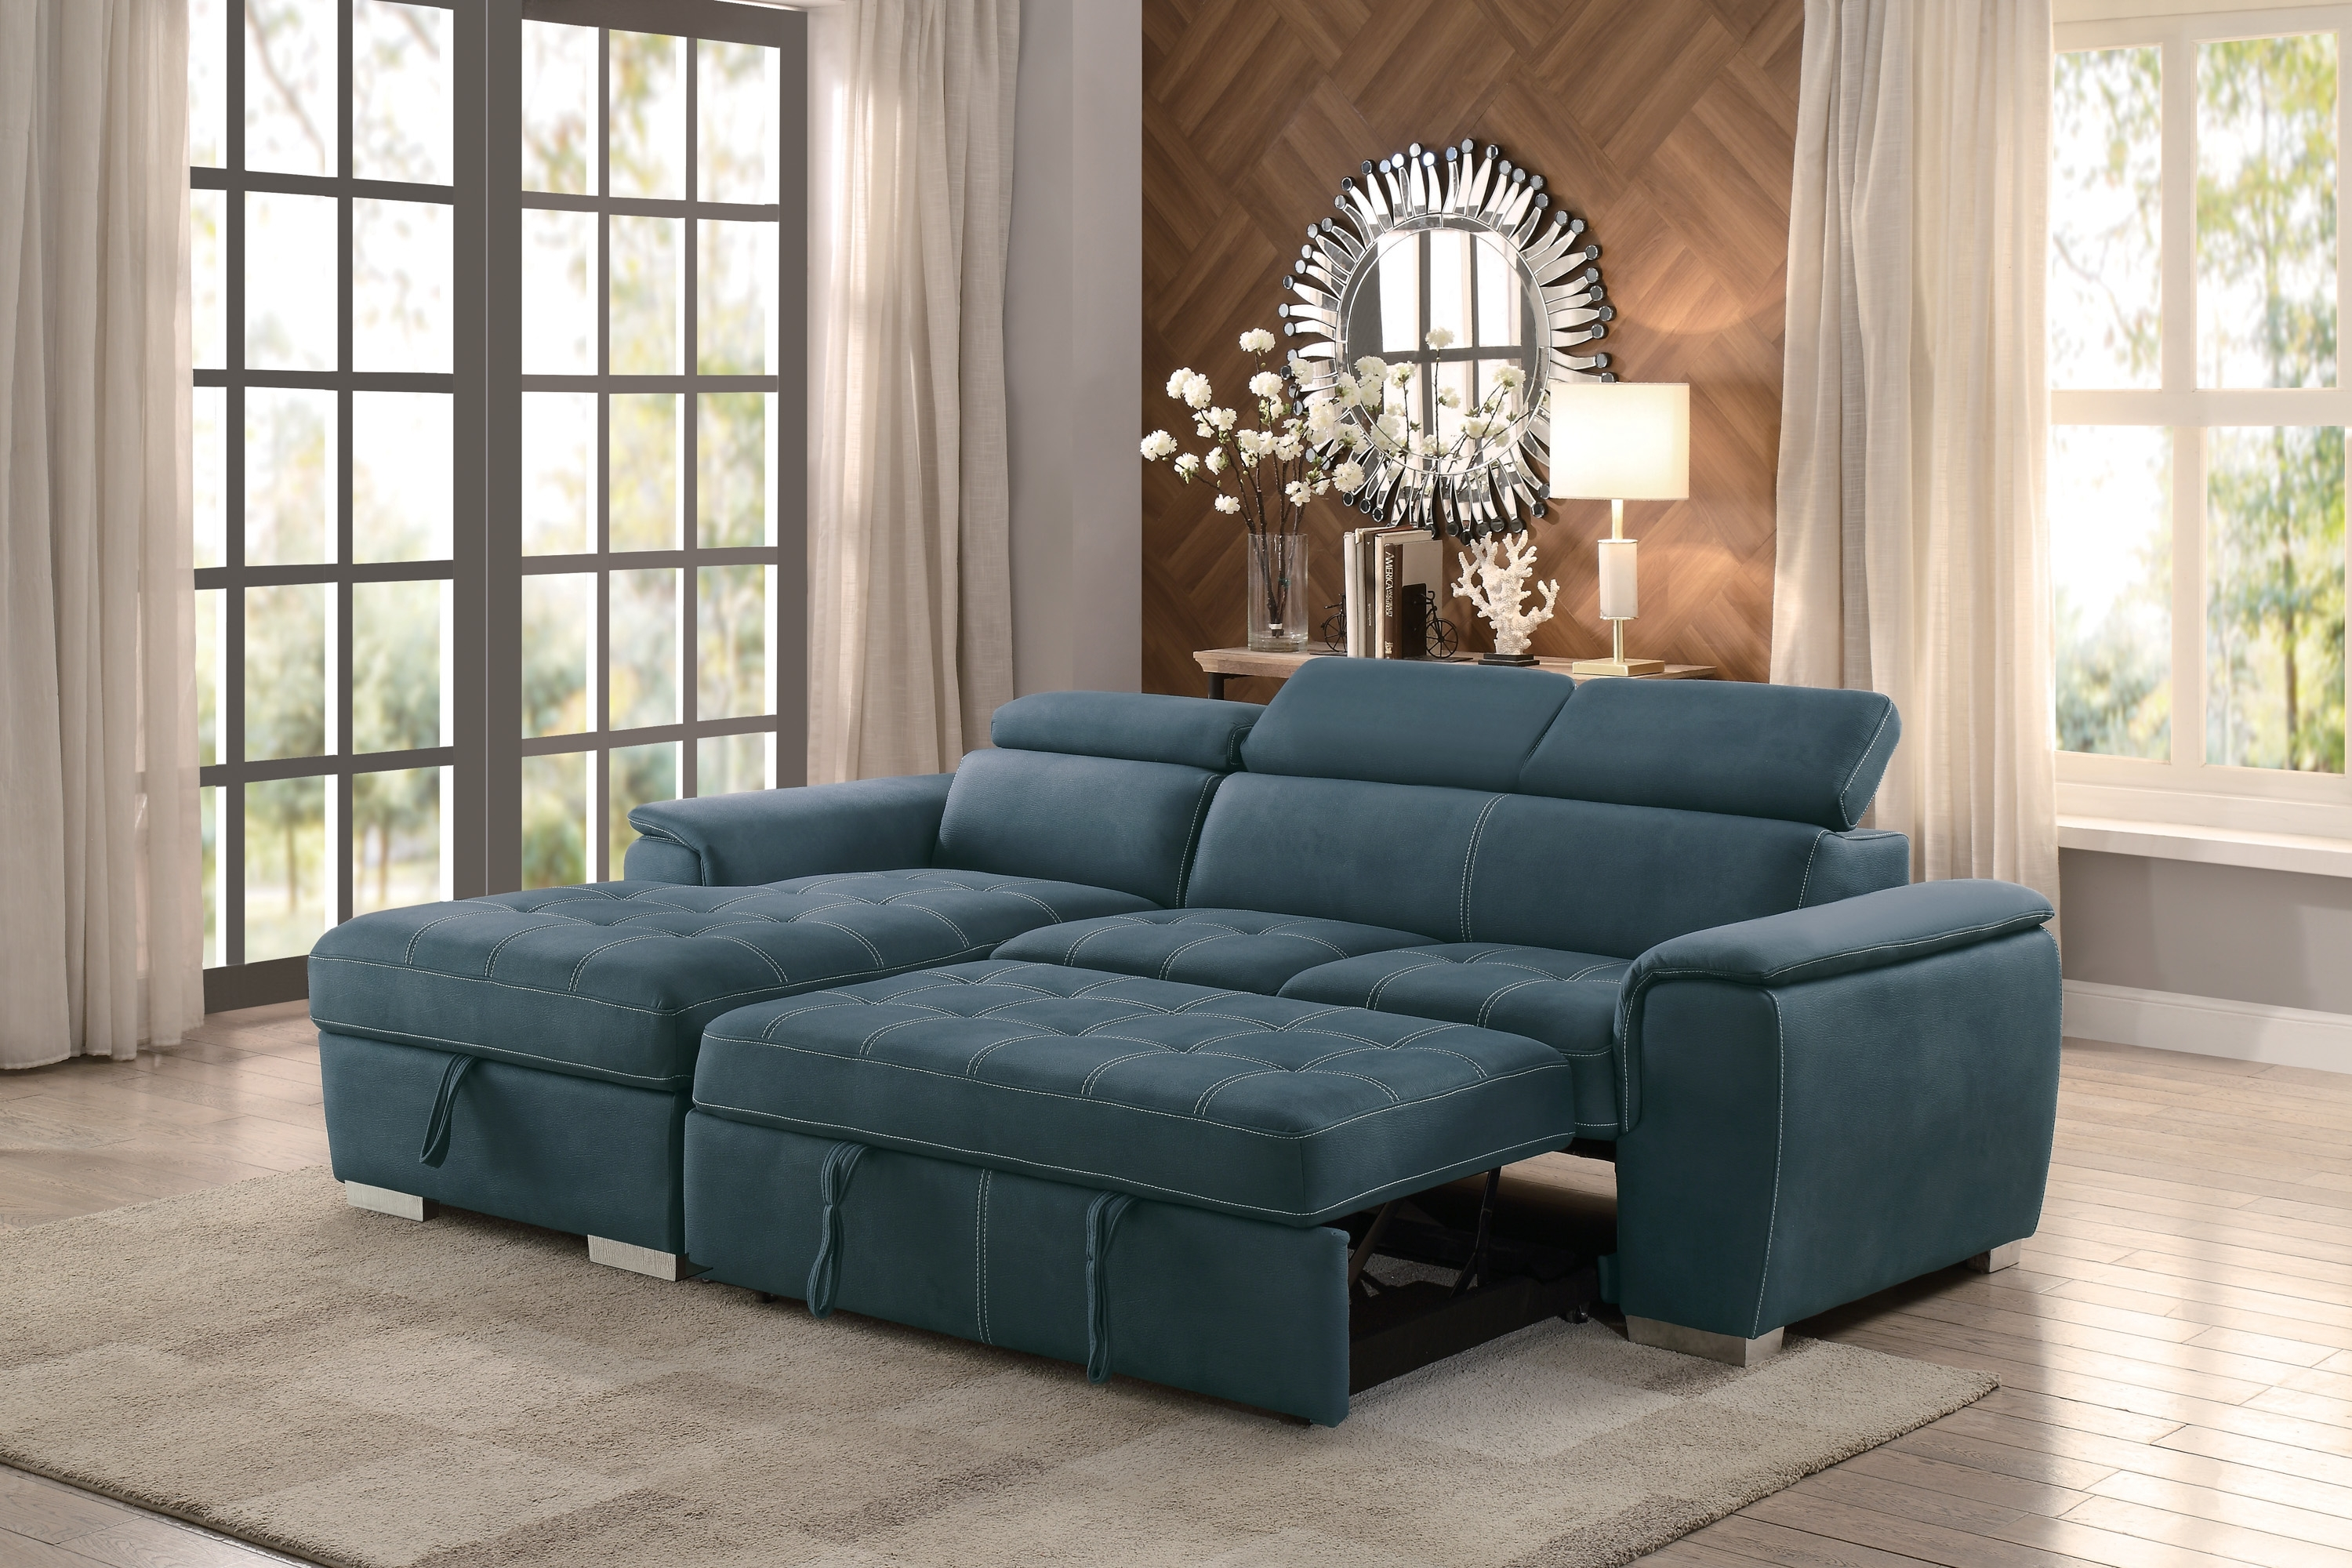 Most Recently Released Adjustable Sectional Sofas With Queen Bed With Regard To Ferriday Modern Style Blue Polyester Fabric Sectional Pull Out Bed (View 20 of 20)